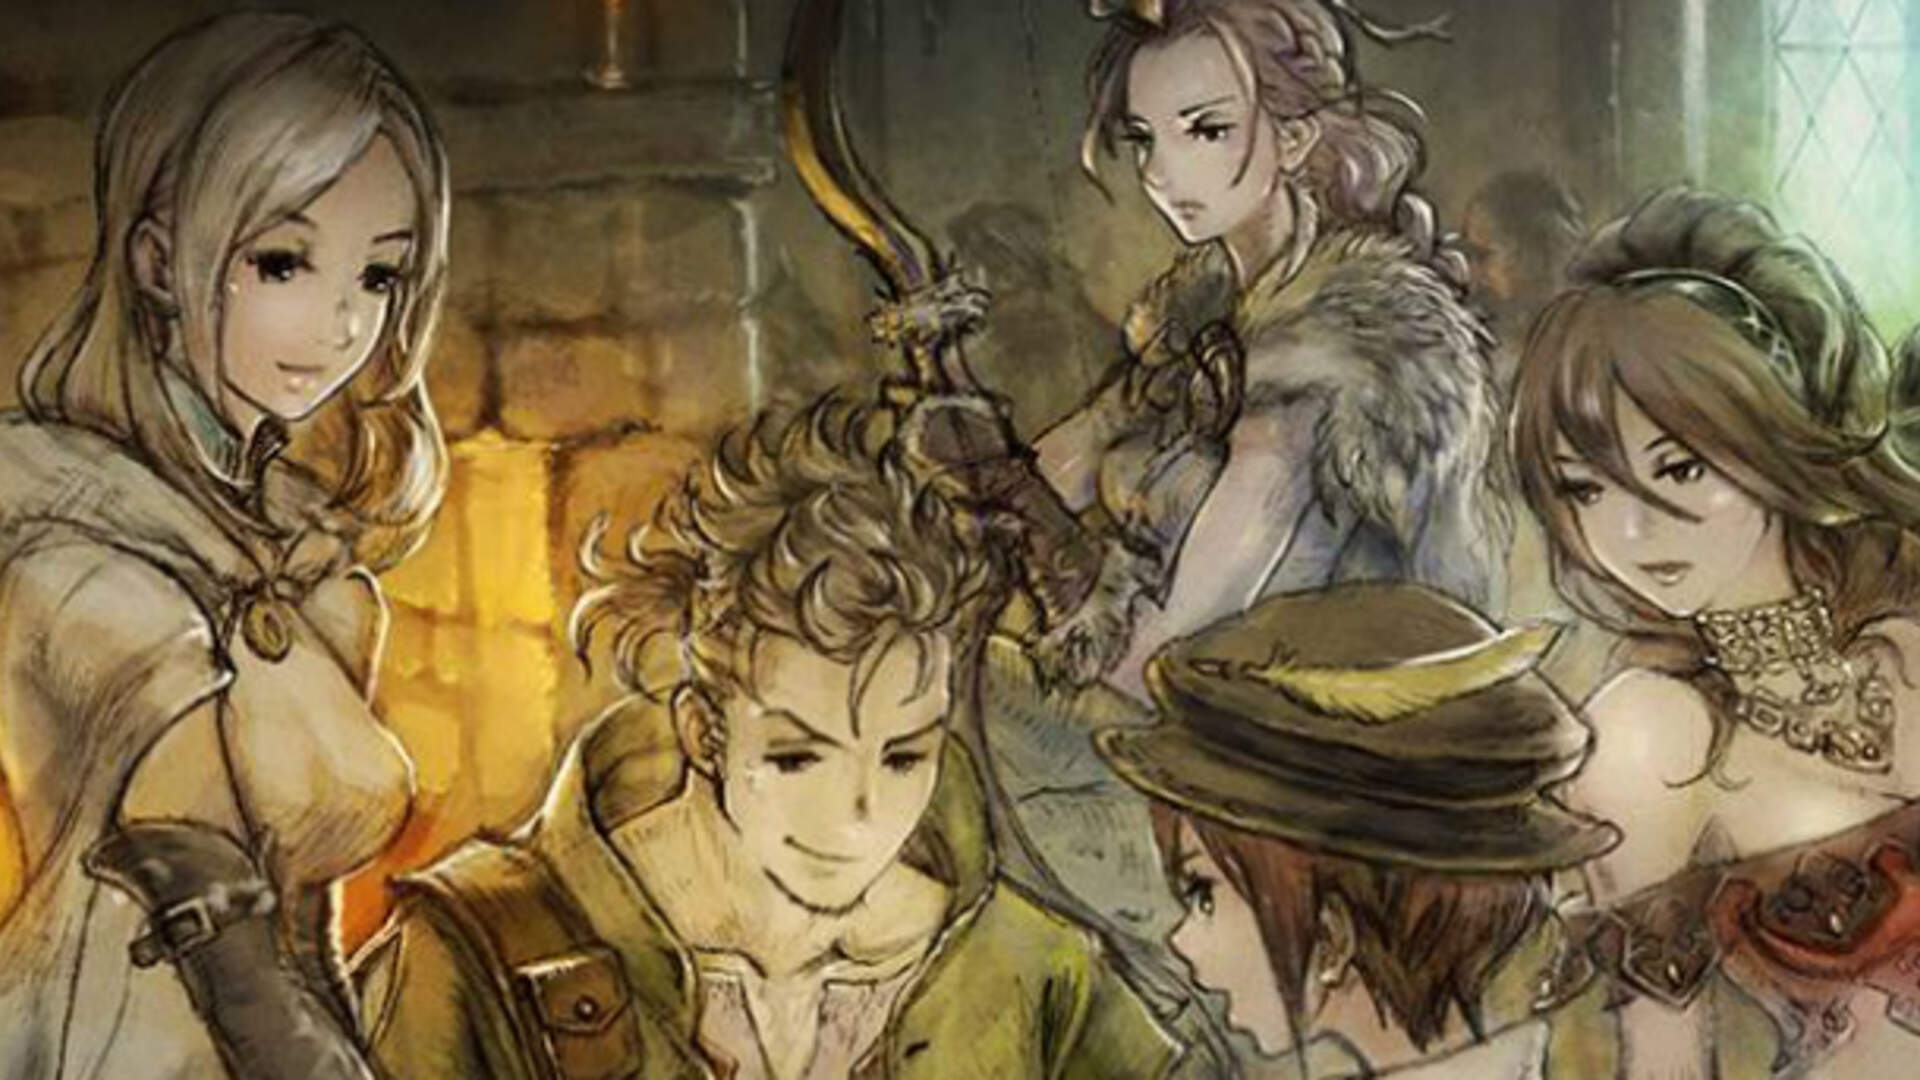 Bravely Default Producer Working on Octopath Traveler For Switch